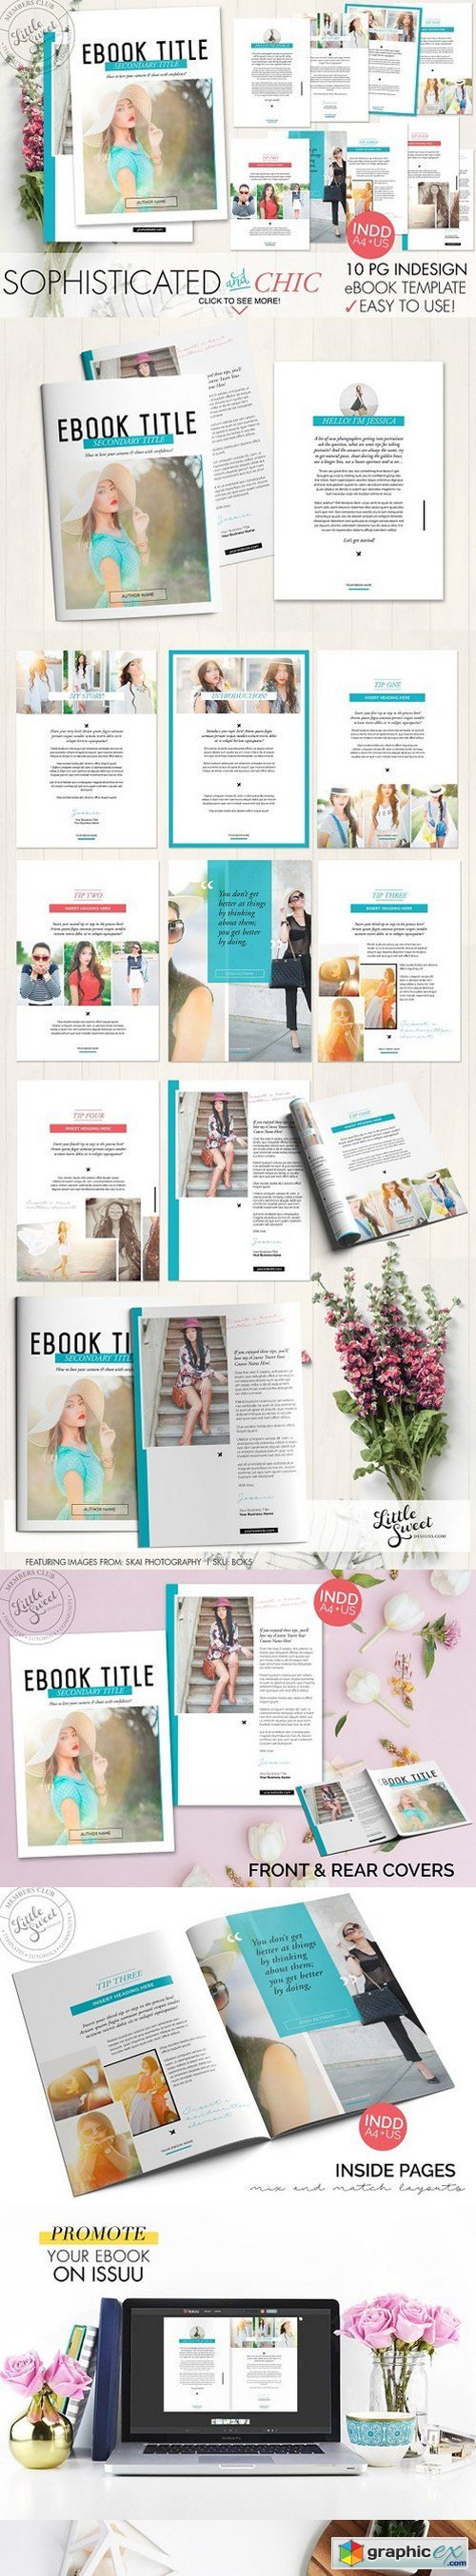 10 page InDesign INDD eBook Template » Free Download Vector Stock ...